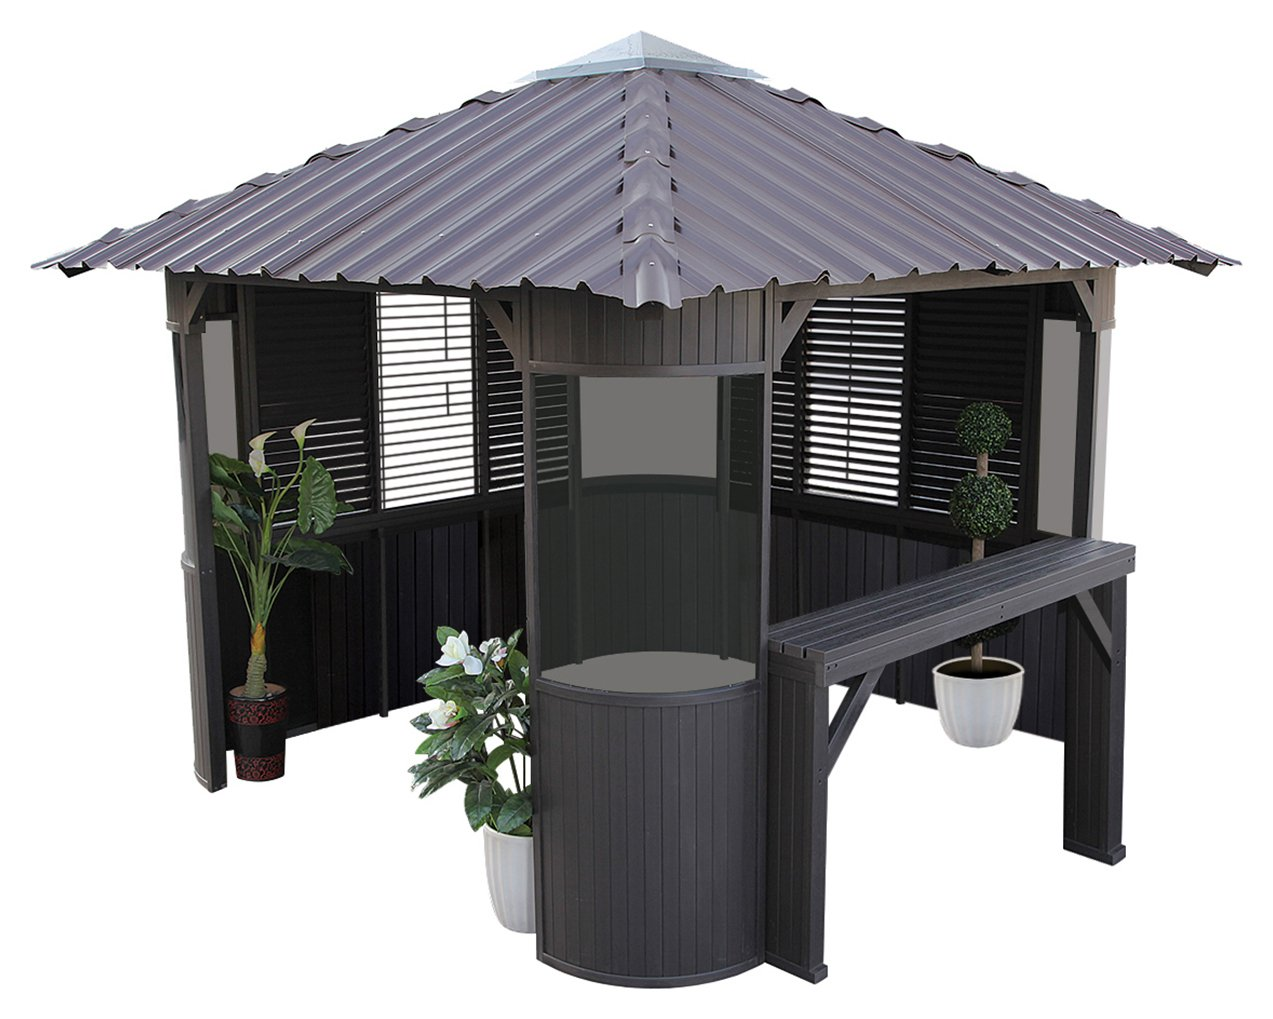 Image of Canadian Spa Frazer Synthetic Hot Tub Gazebo Enclosure